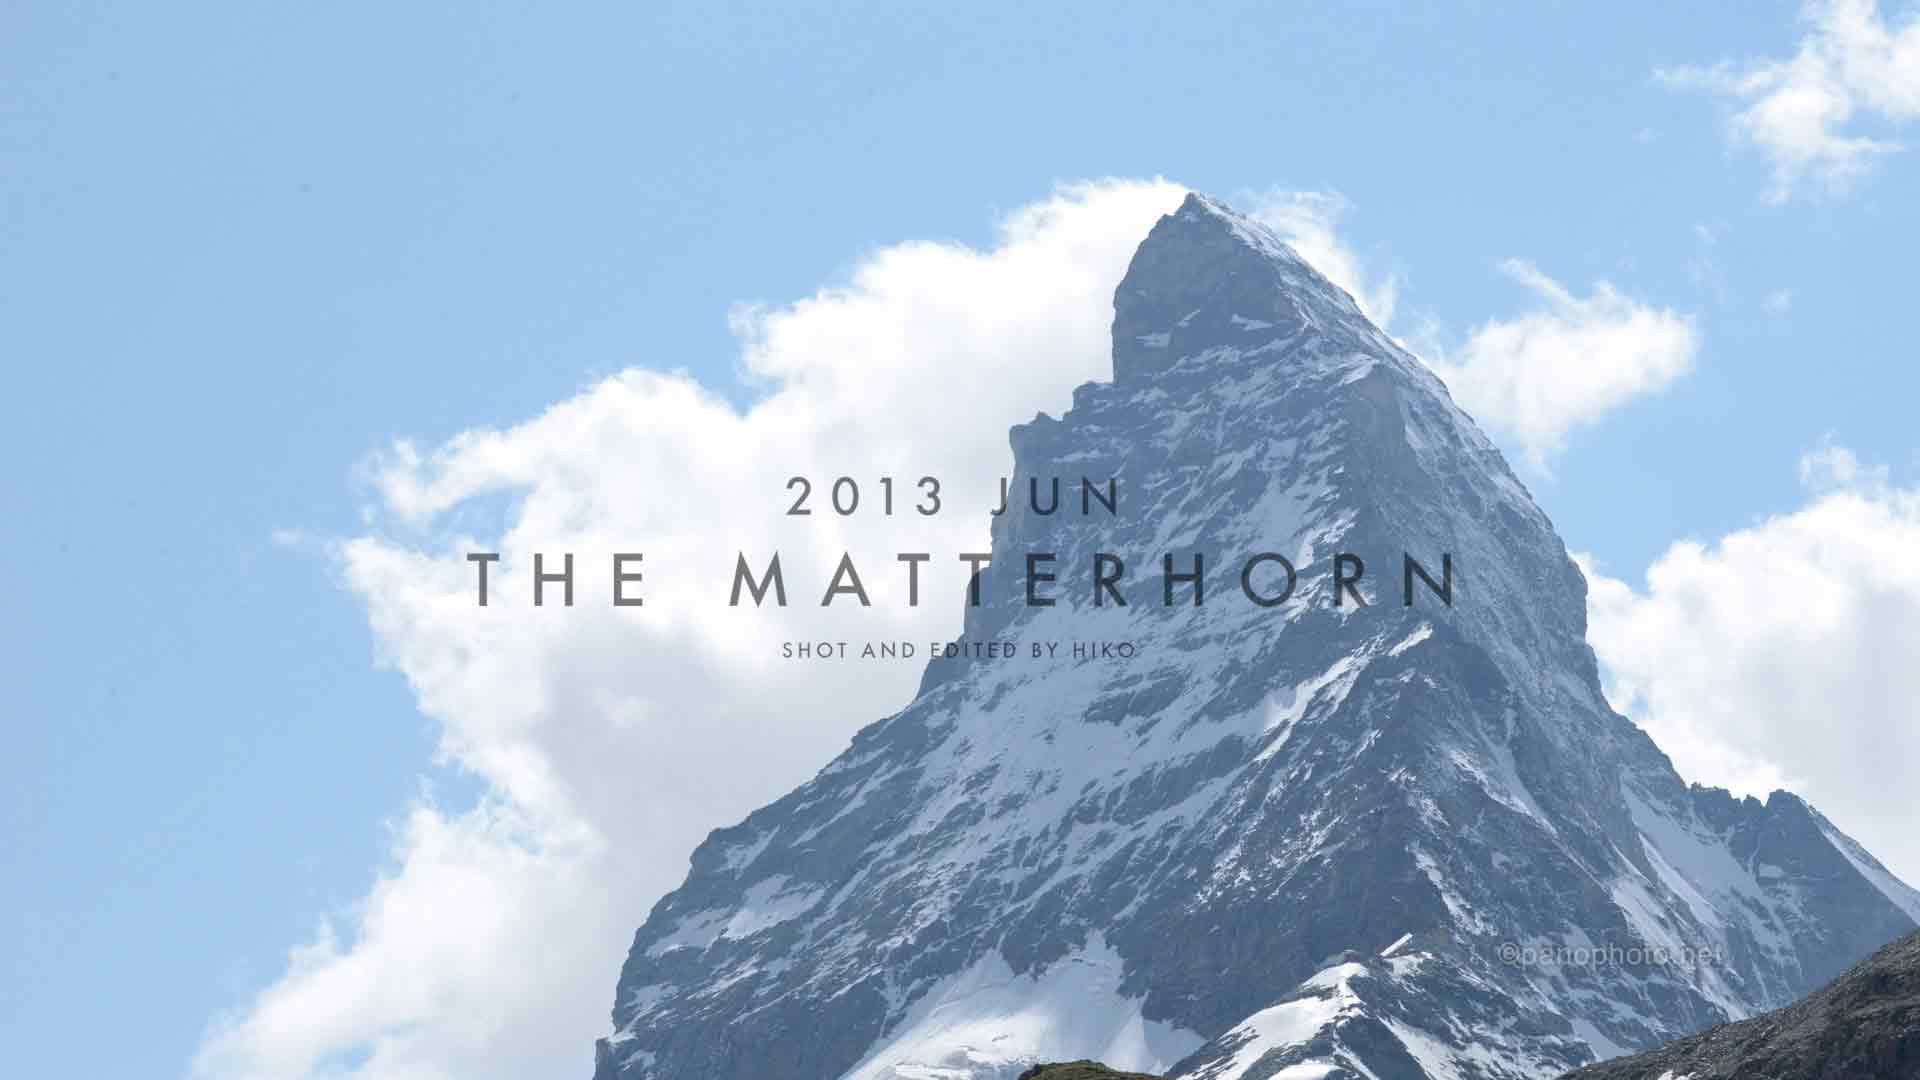 Matterhorn-Timelapse-Featured-Image